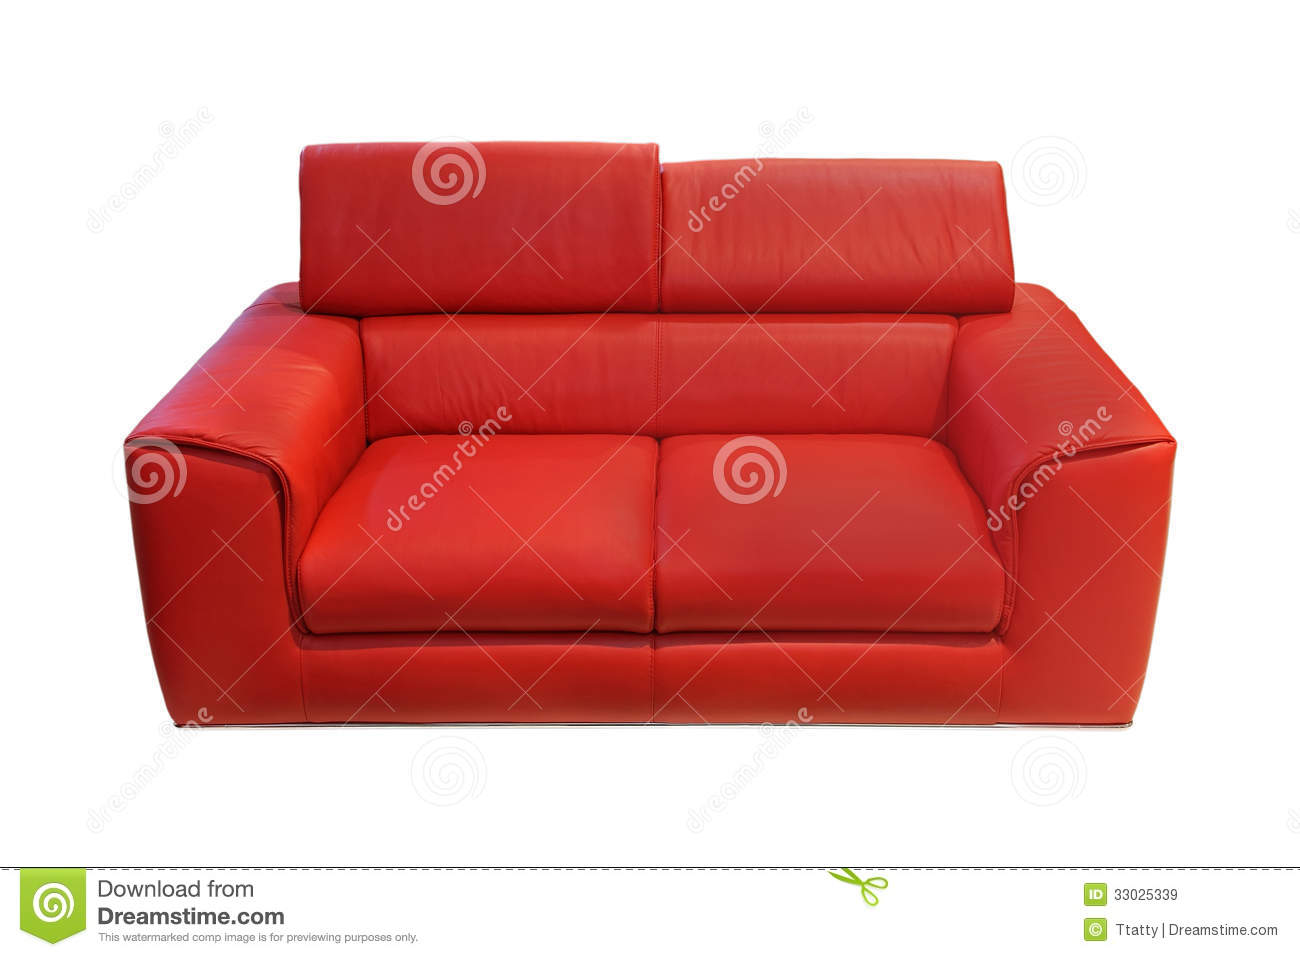 Red couch stock image. Image of leather, clipping, path ...